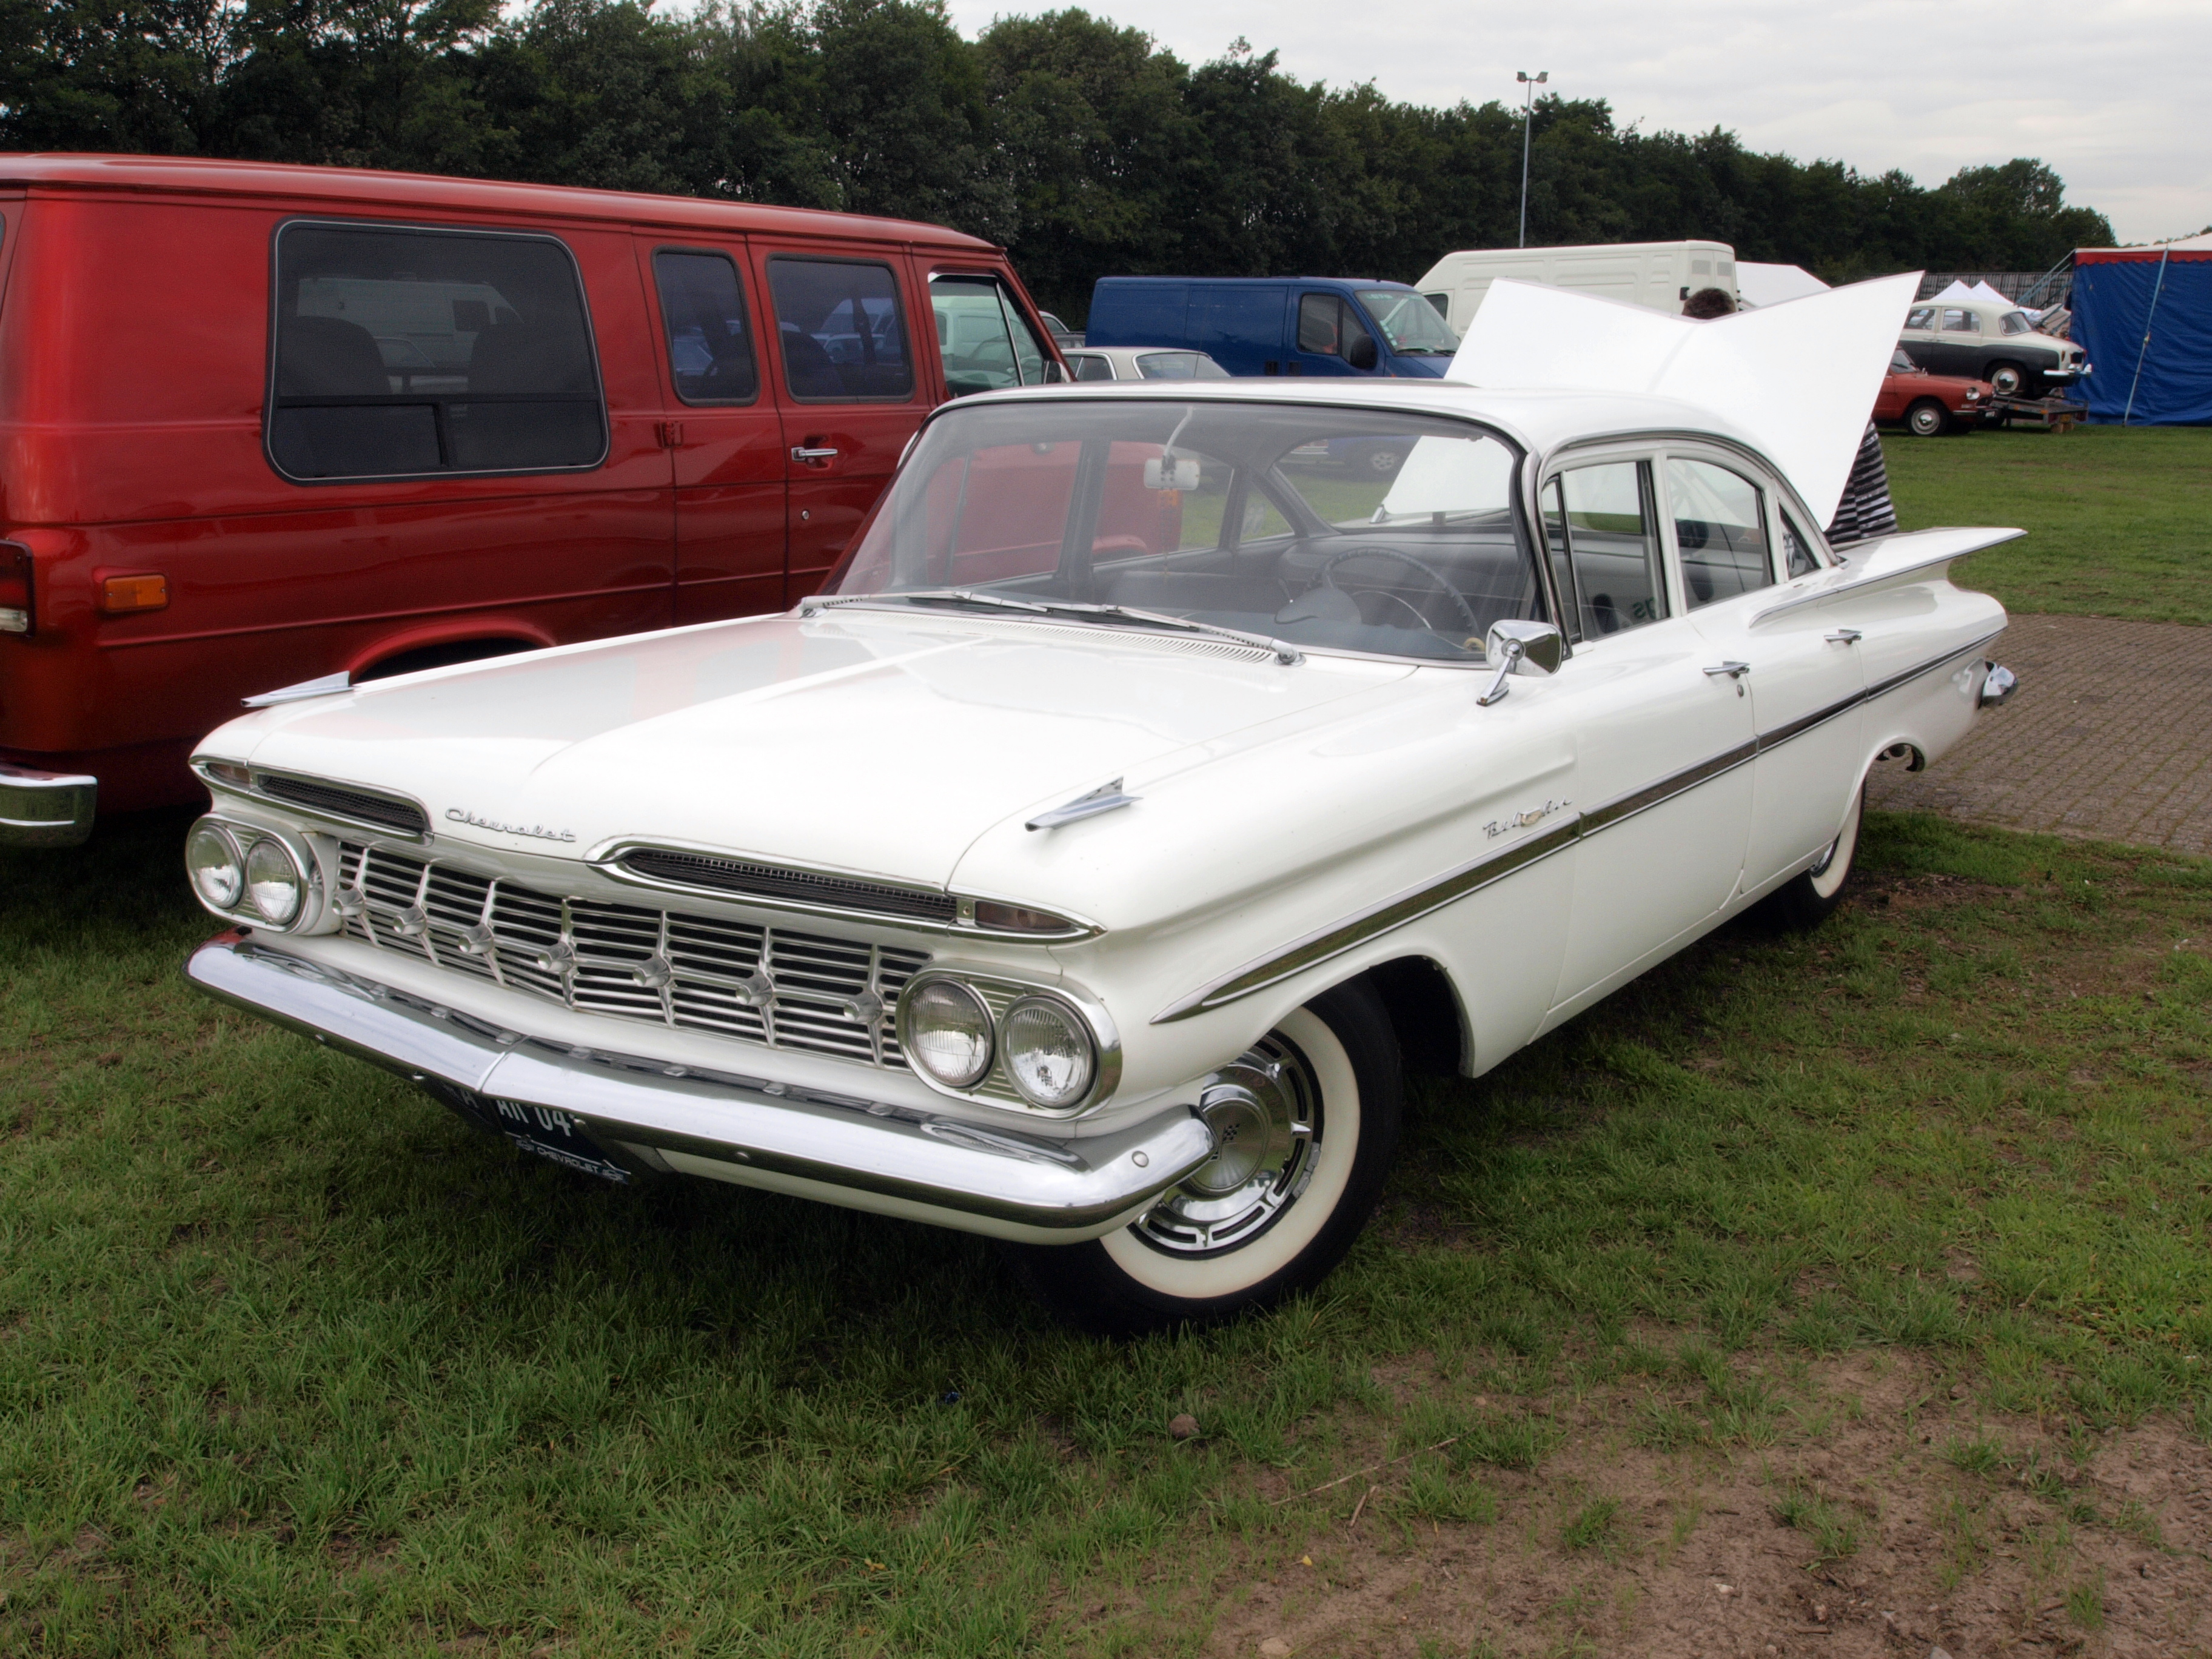 2 Person Car >> File:Chevrolet Bel air (1959) at the Autotron, dutch licence registration AR-04-47 p1.JPG ...